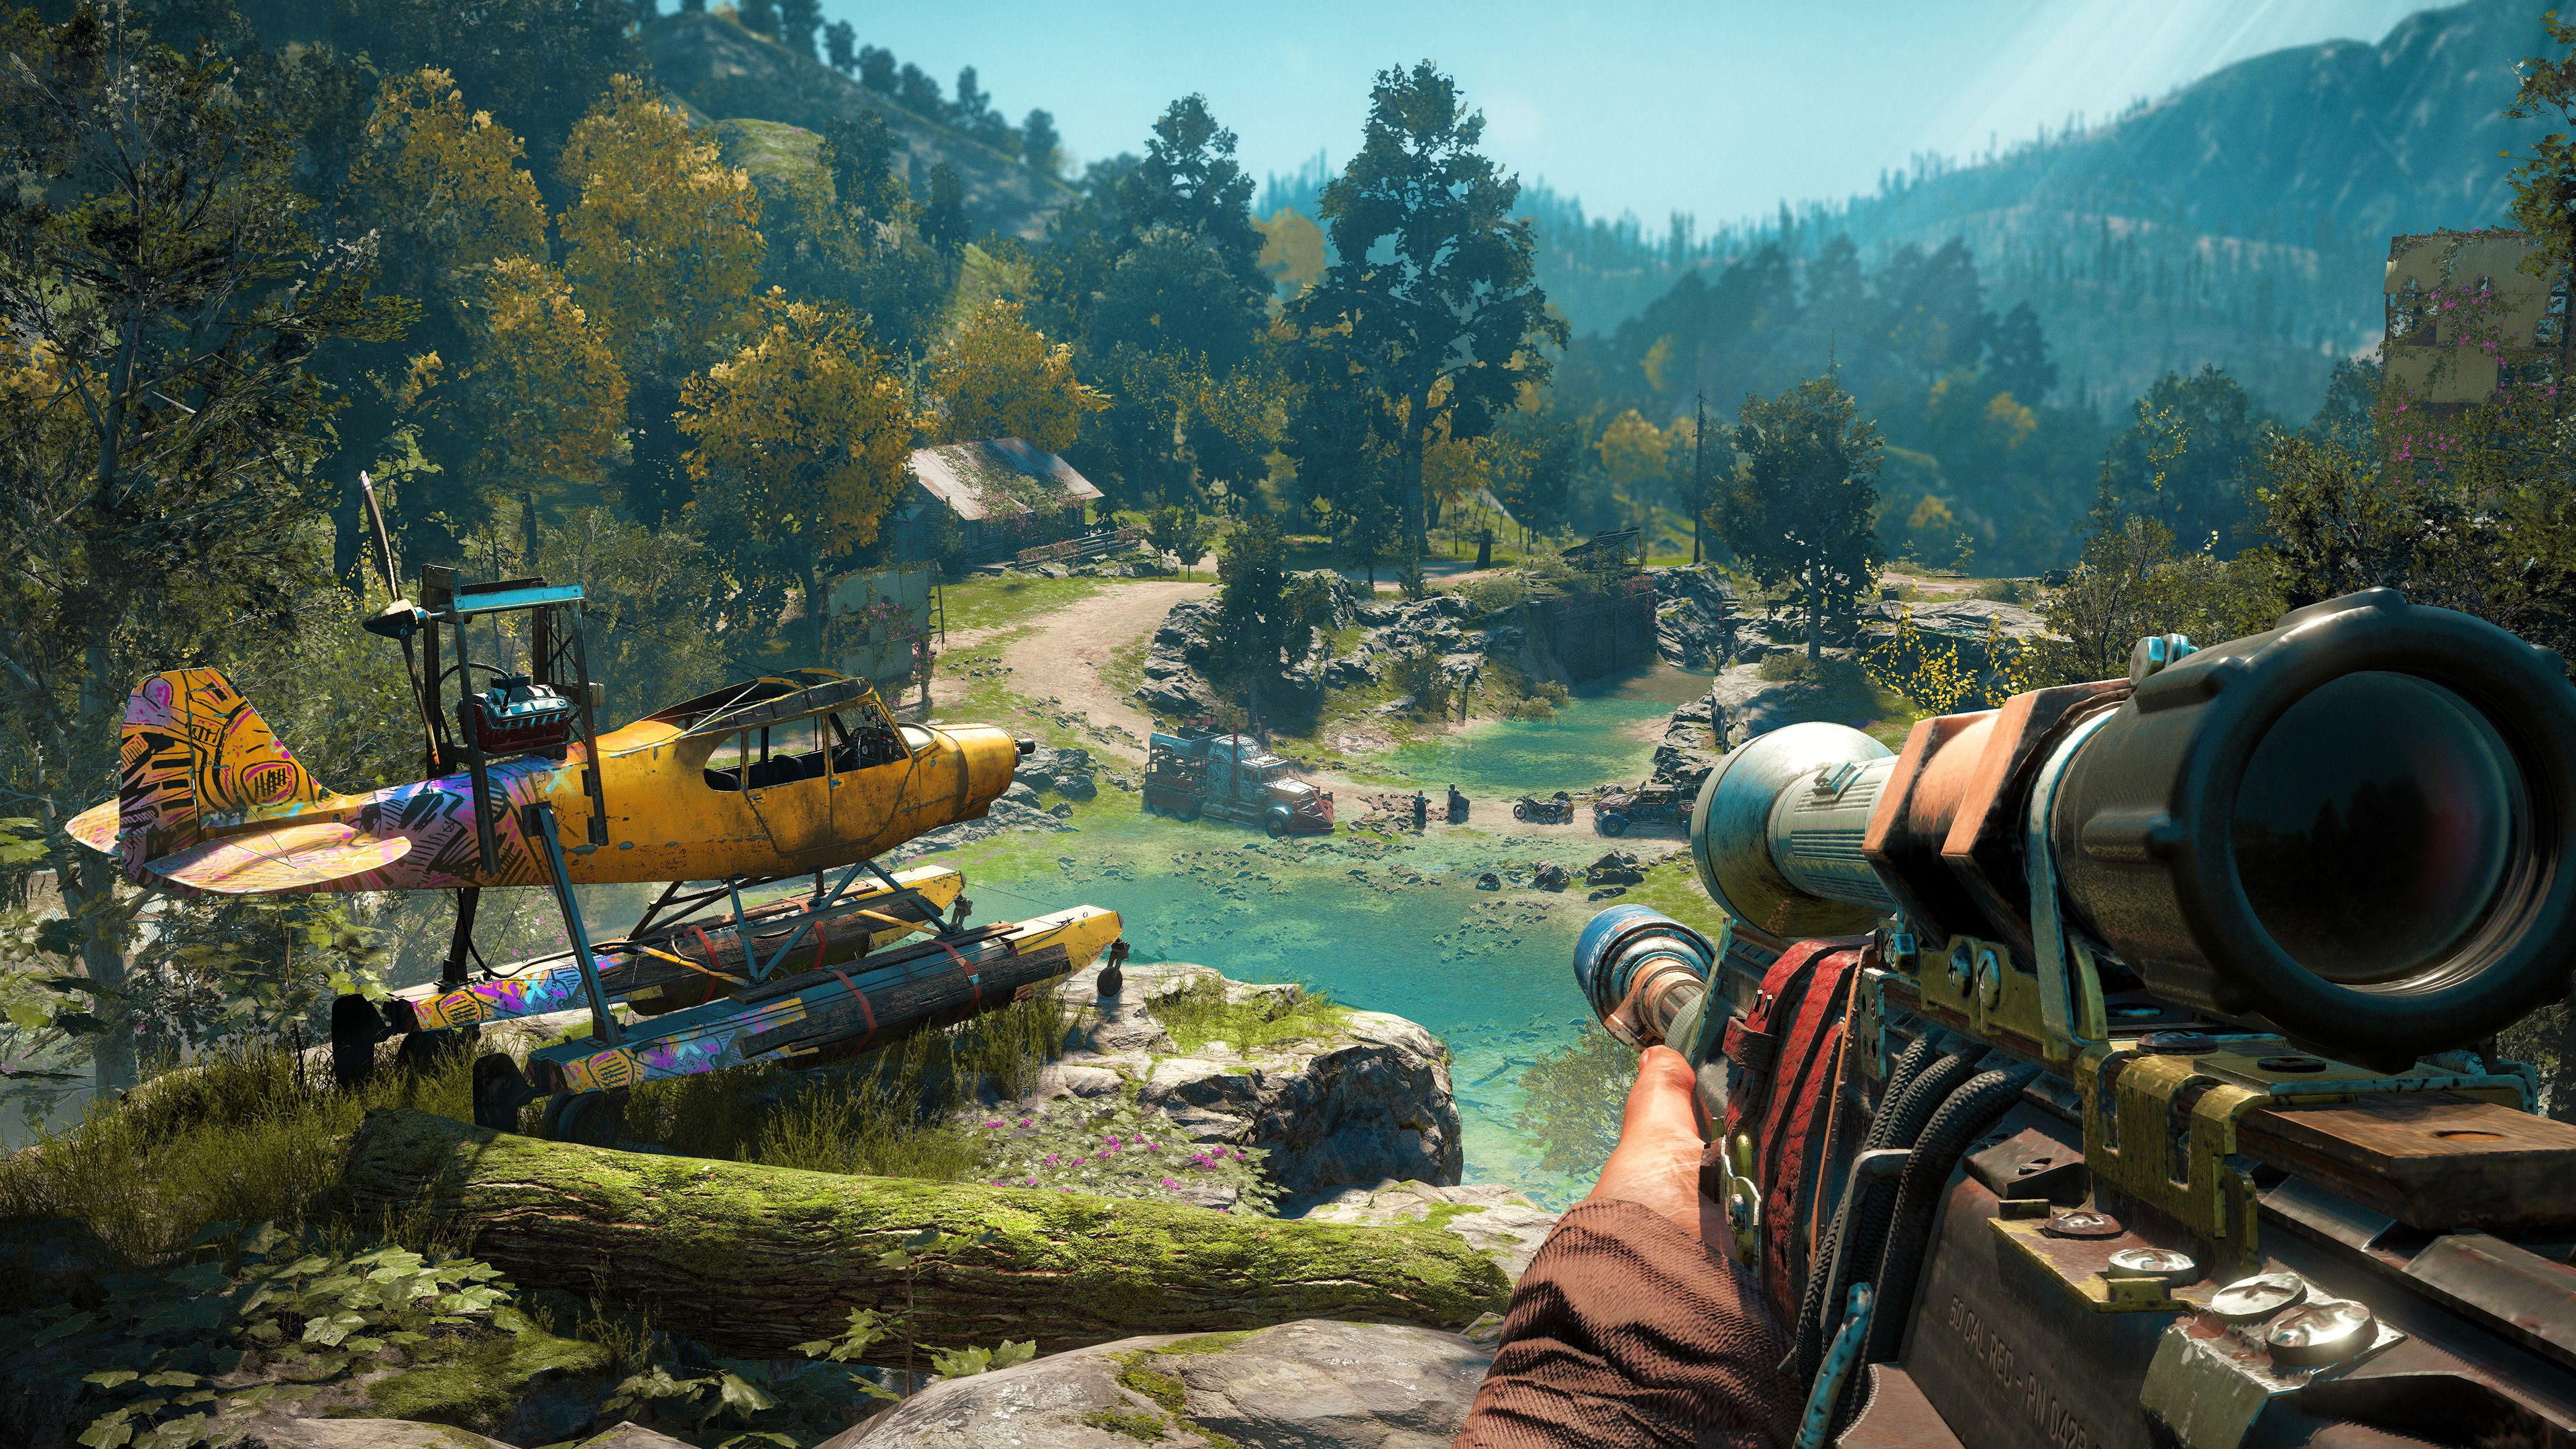 Far Cry New Dawn Story And Gameplay Trailer Released Just Push